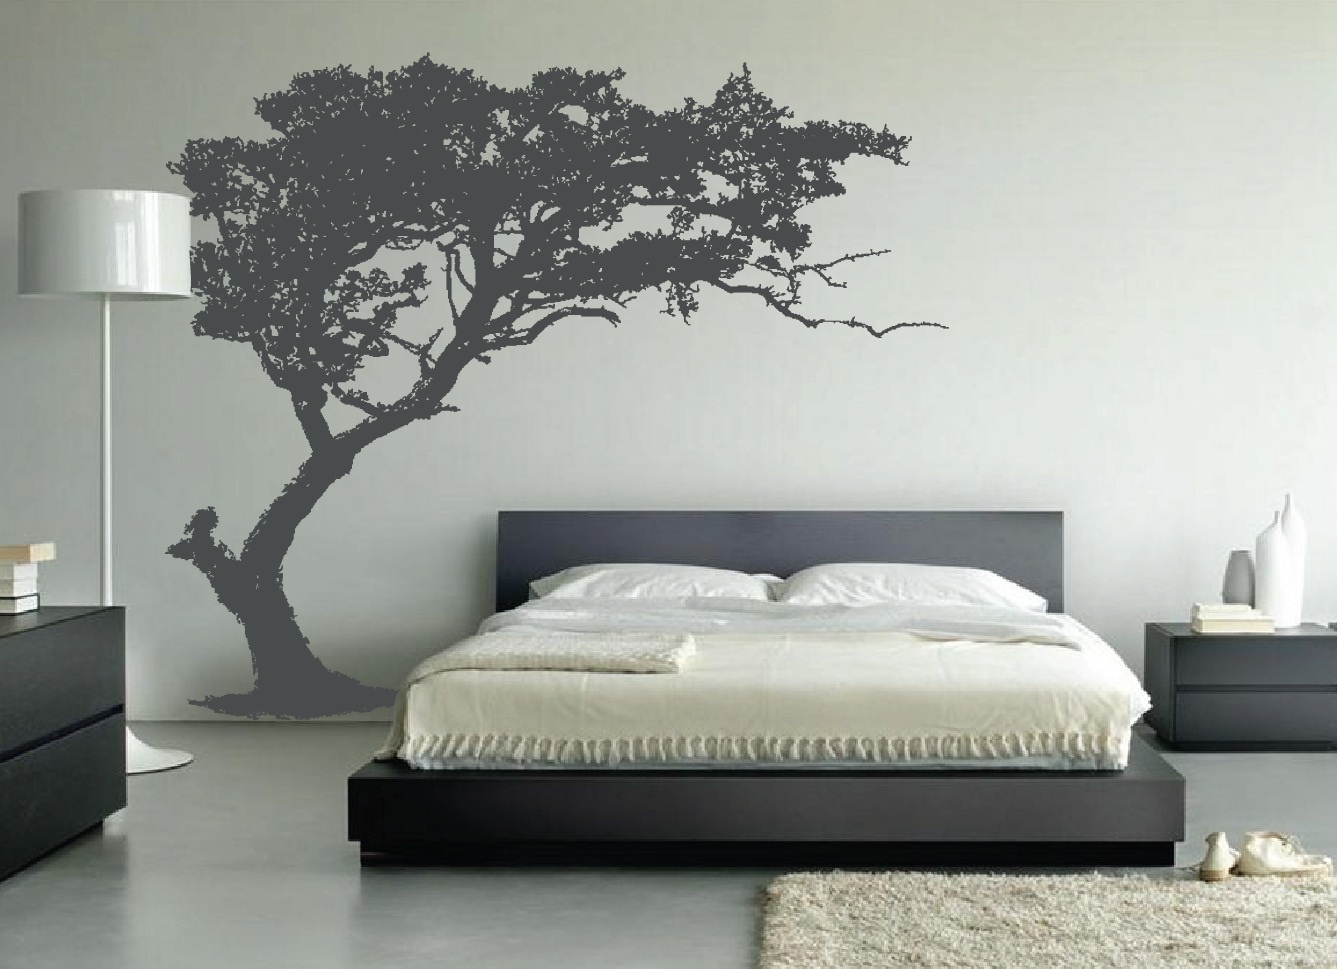 leaning-tree-wall-decal-bedroom-decor-1130.jpg